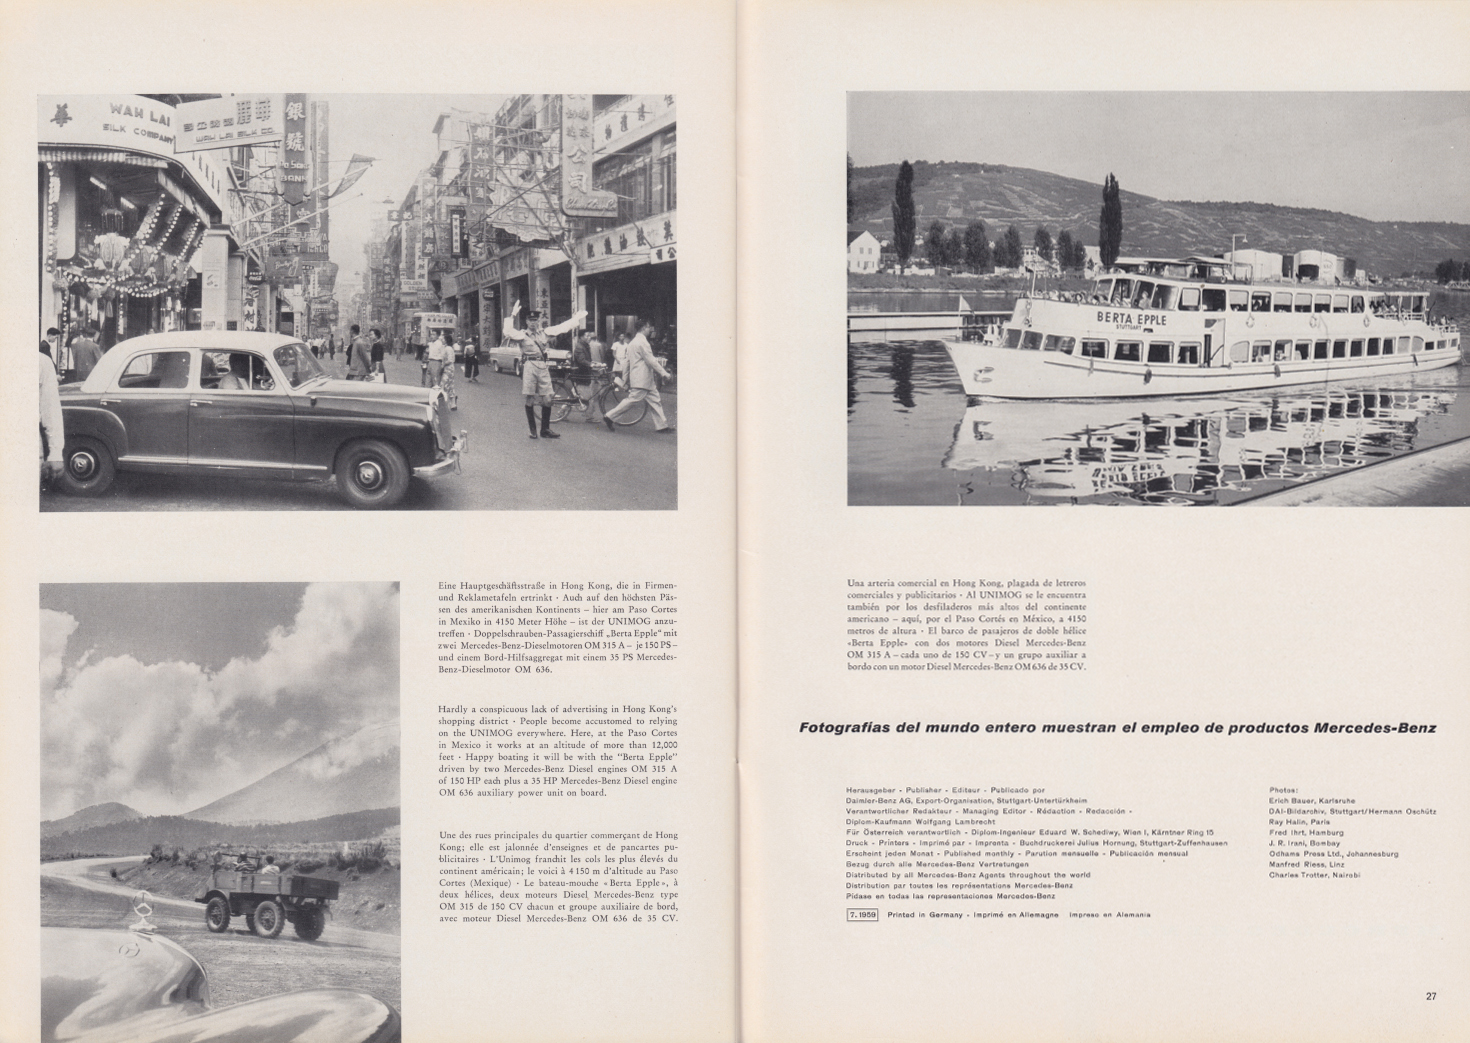 (REVISTA): Periódico In aller welt n.º 33 - Mercedes-Benz no mundo - 1959 - multilingue 014